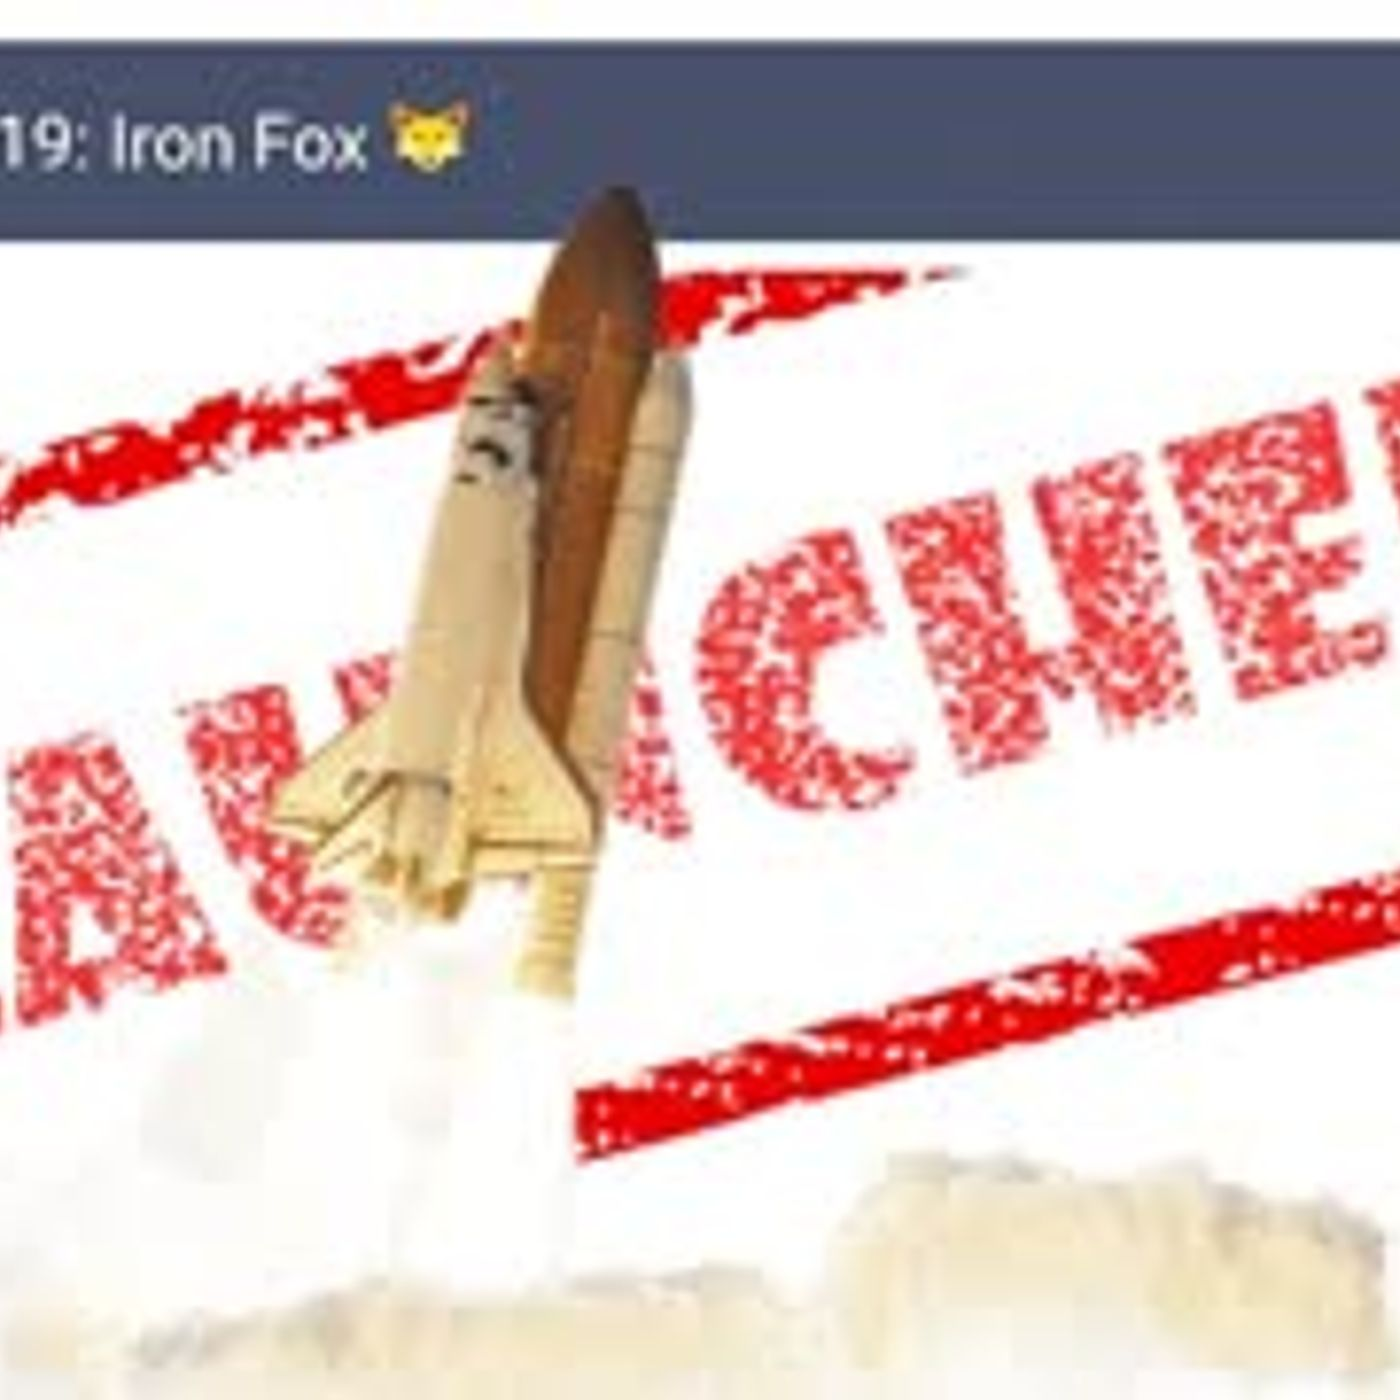 IRON FOX DEPLOYED!   2019 is Closing... Who Will be the Big Winners of 2019 - PRIVACY will WIN!